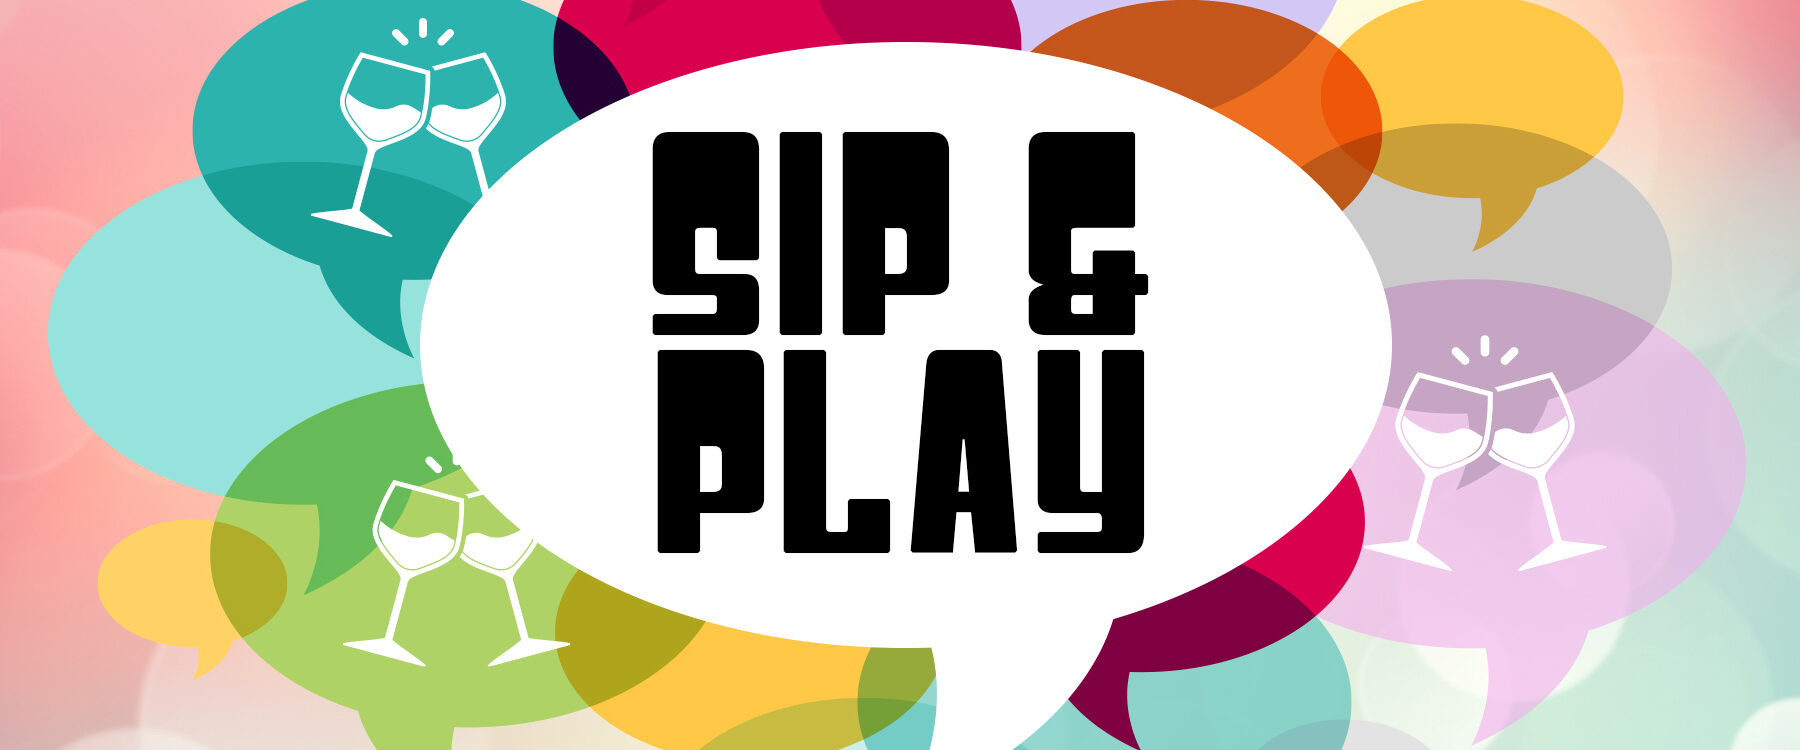 Sip & Play speech bubble over colorful background of speech bubbles and clinking wine glasses